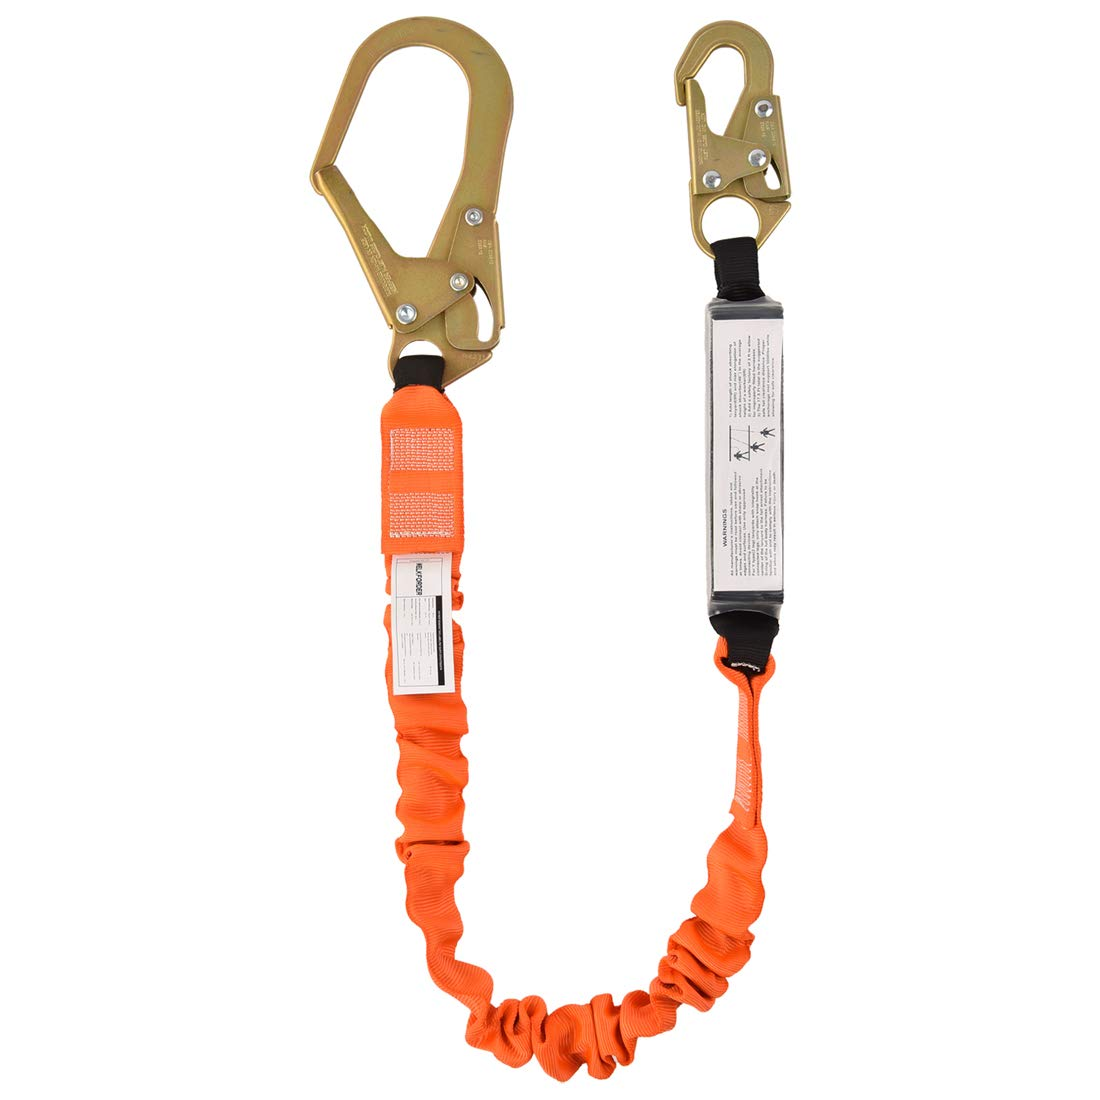 WELKFORDER Single Leg 6-Foot Fall Protection Shock Absorber Stretch Safety Lanyard with Snap & Rebar Hook Connectors ANSI Z359.13-2013 Complaint